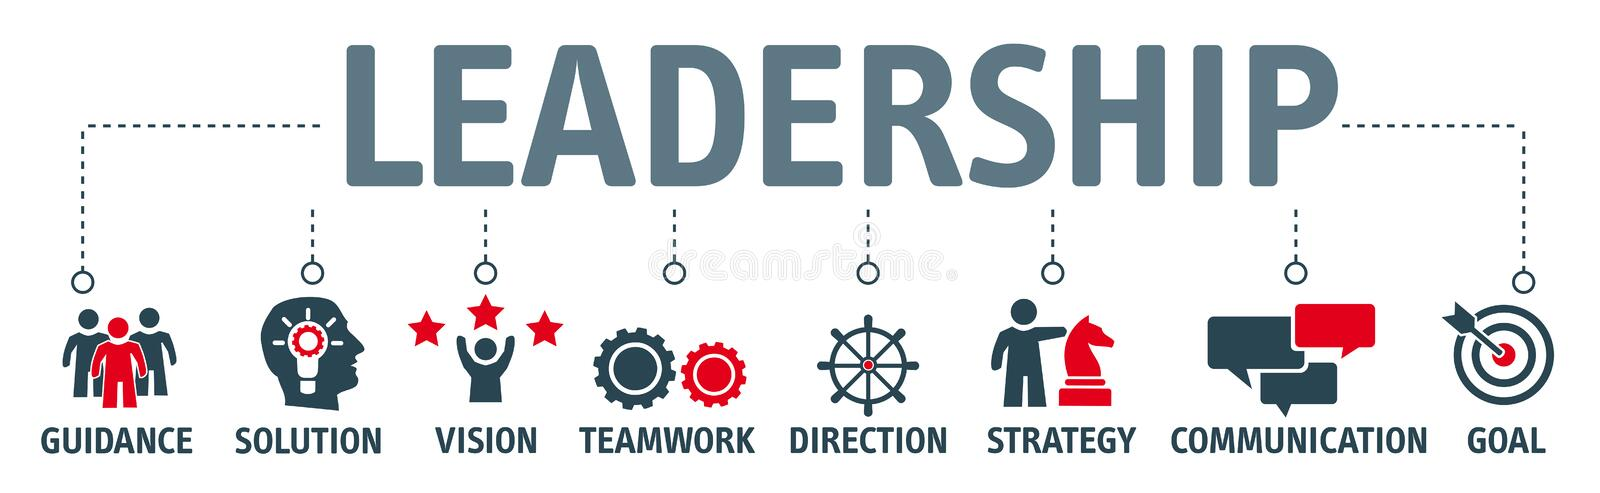 Banner leadership concept. Leadership concept illustration with icons royalty free illustration